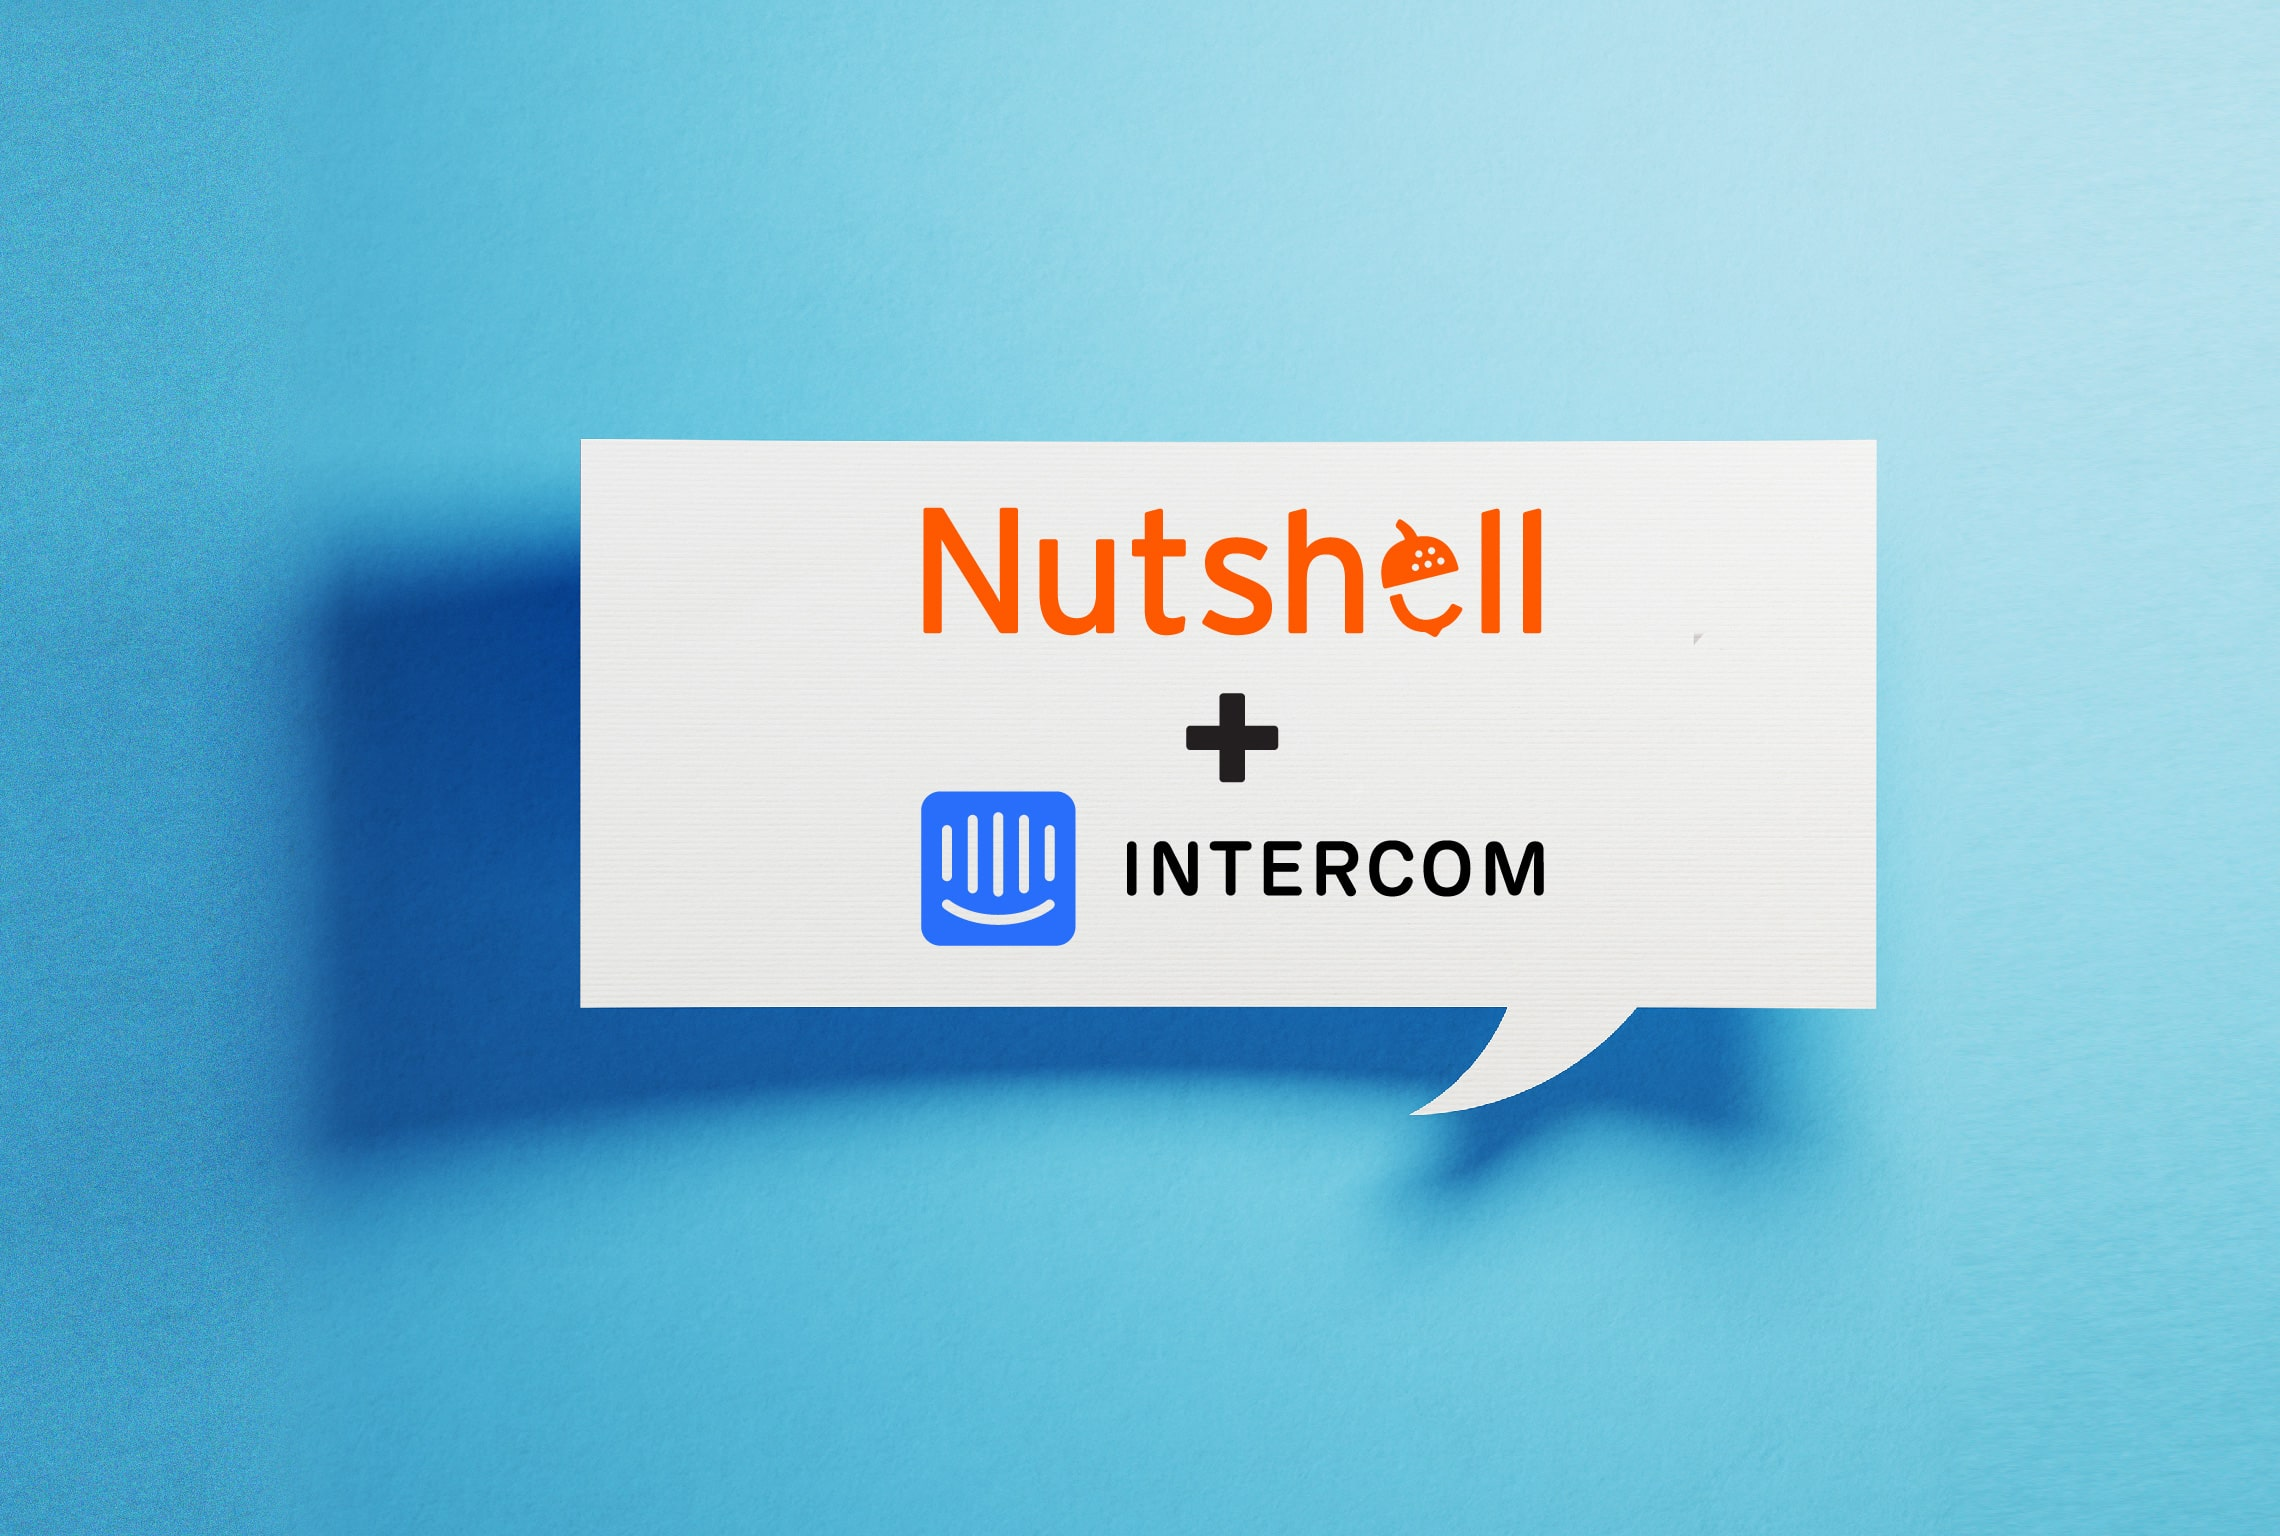 nutshell intercom integration crm web chat integration